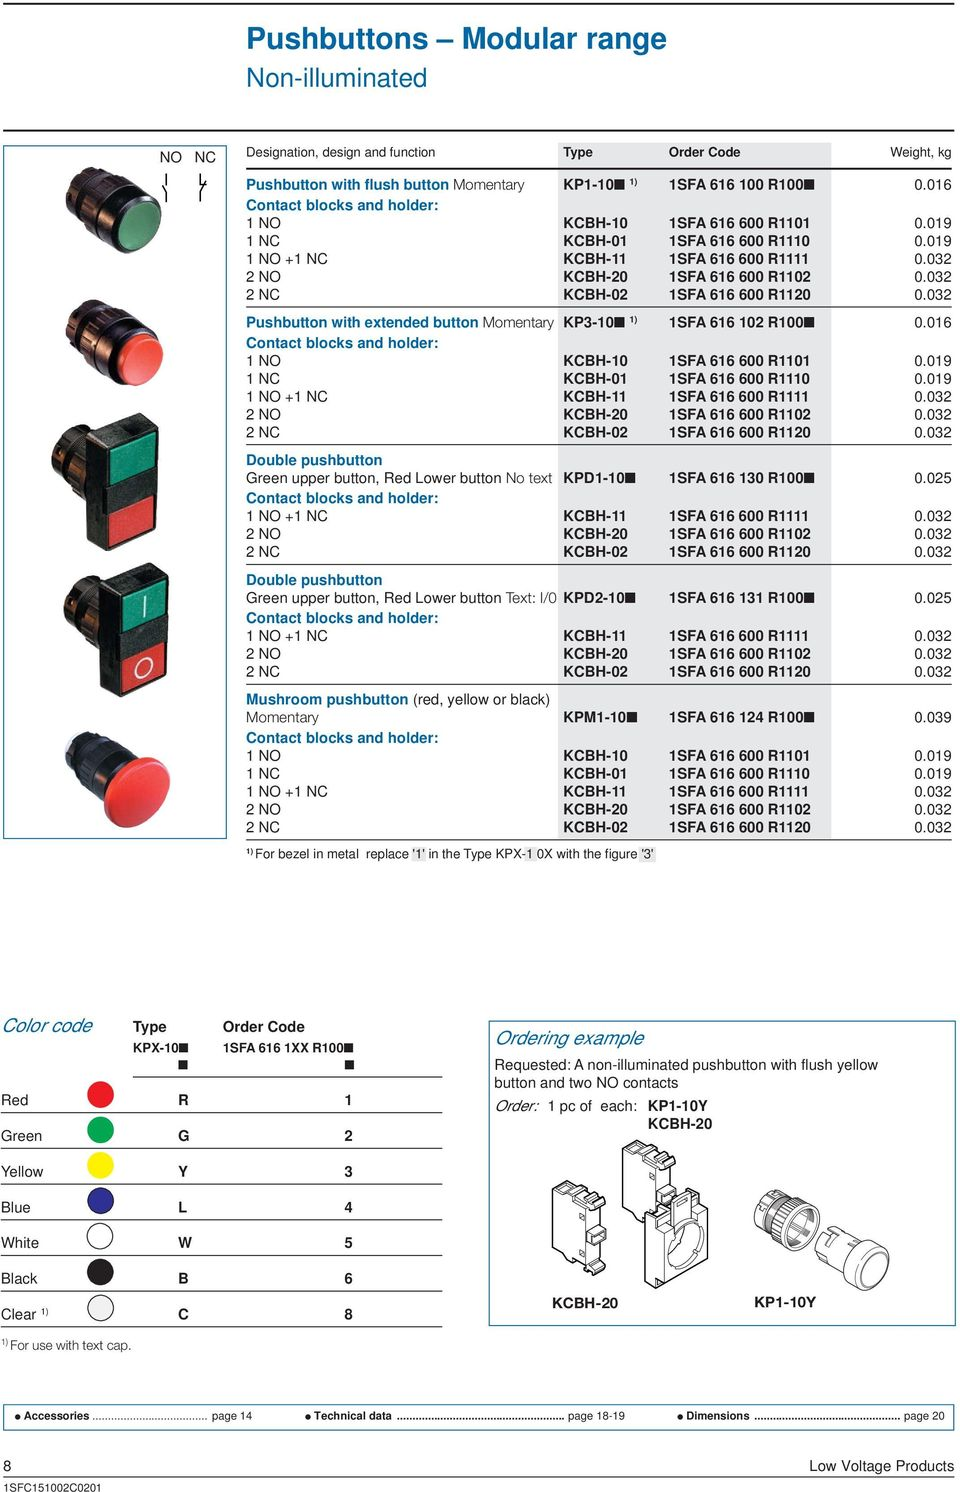 Pilot Devices 22 Mm Short Form Catalogue Pdf Rocker Switch Spst X2 With Red Green Indicator Lamps 032 2 Nc Kcbh 02 1sfa 616 600 R1120 0032 Pushbutton Extended Button Momentary